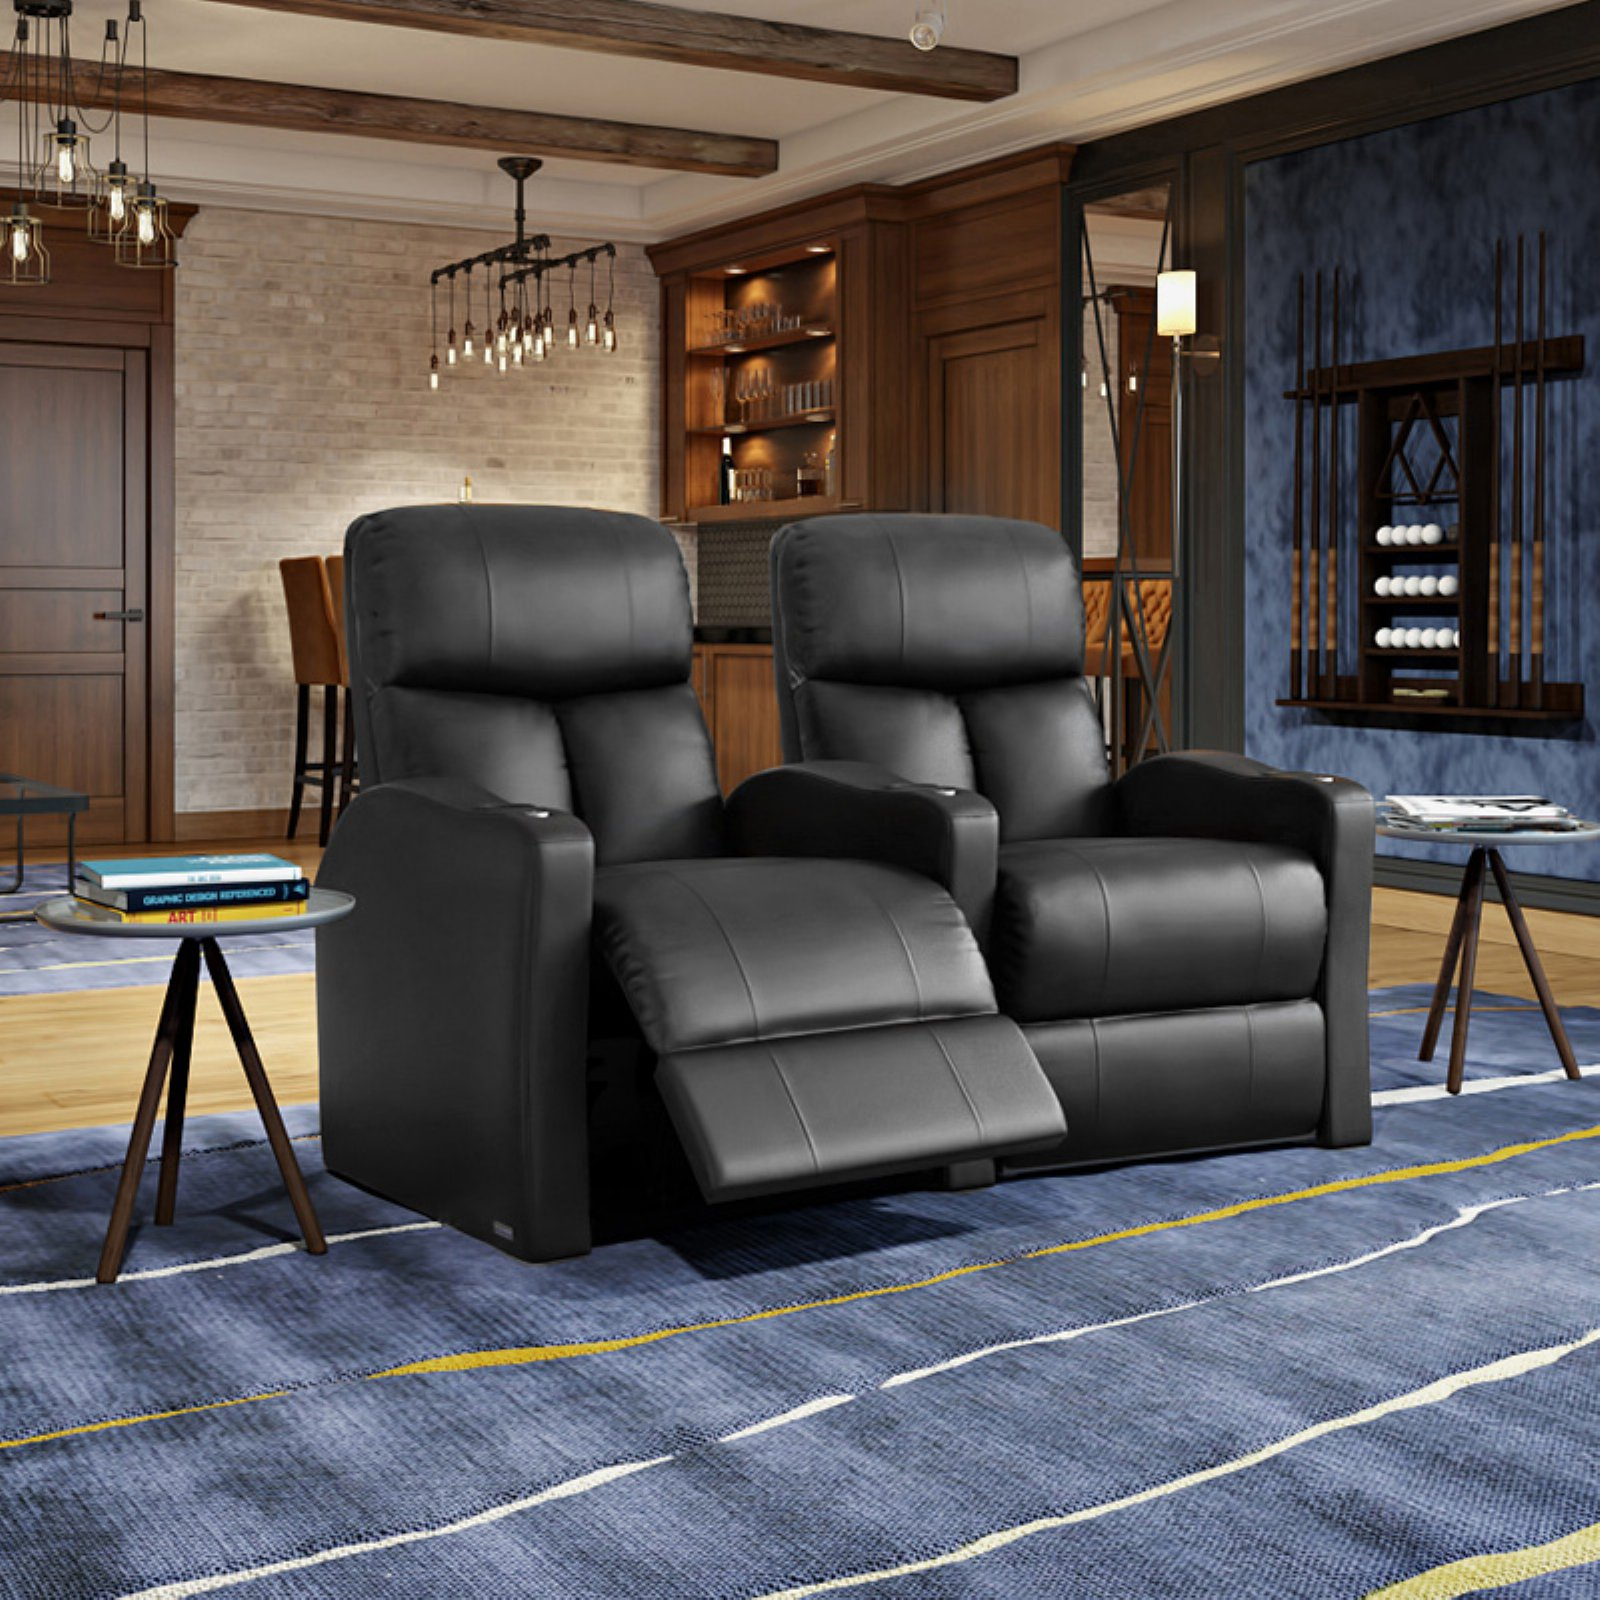 Octane Bolt XS400 2 Seater Curved Power Recline Home Theater Seating